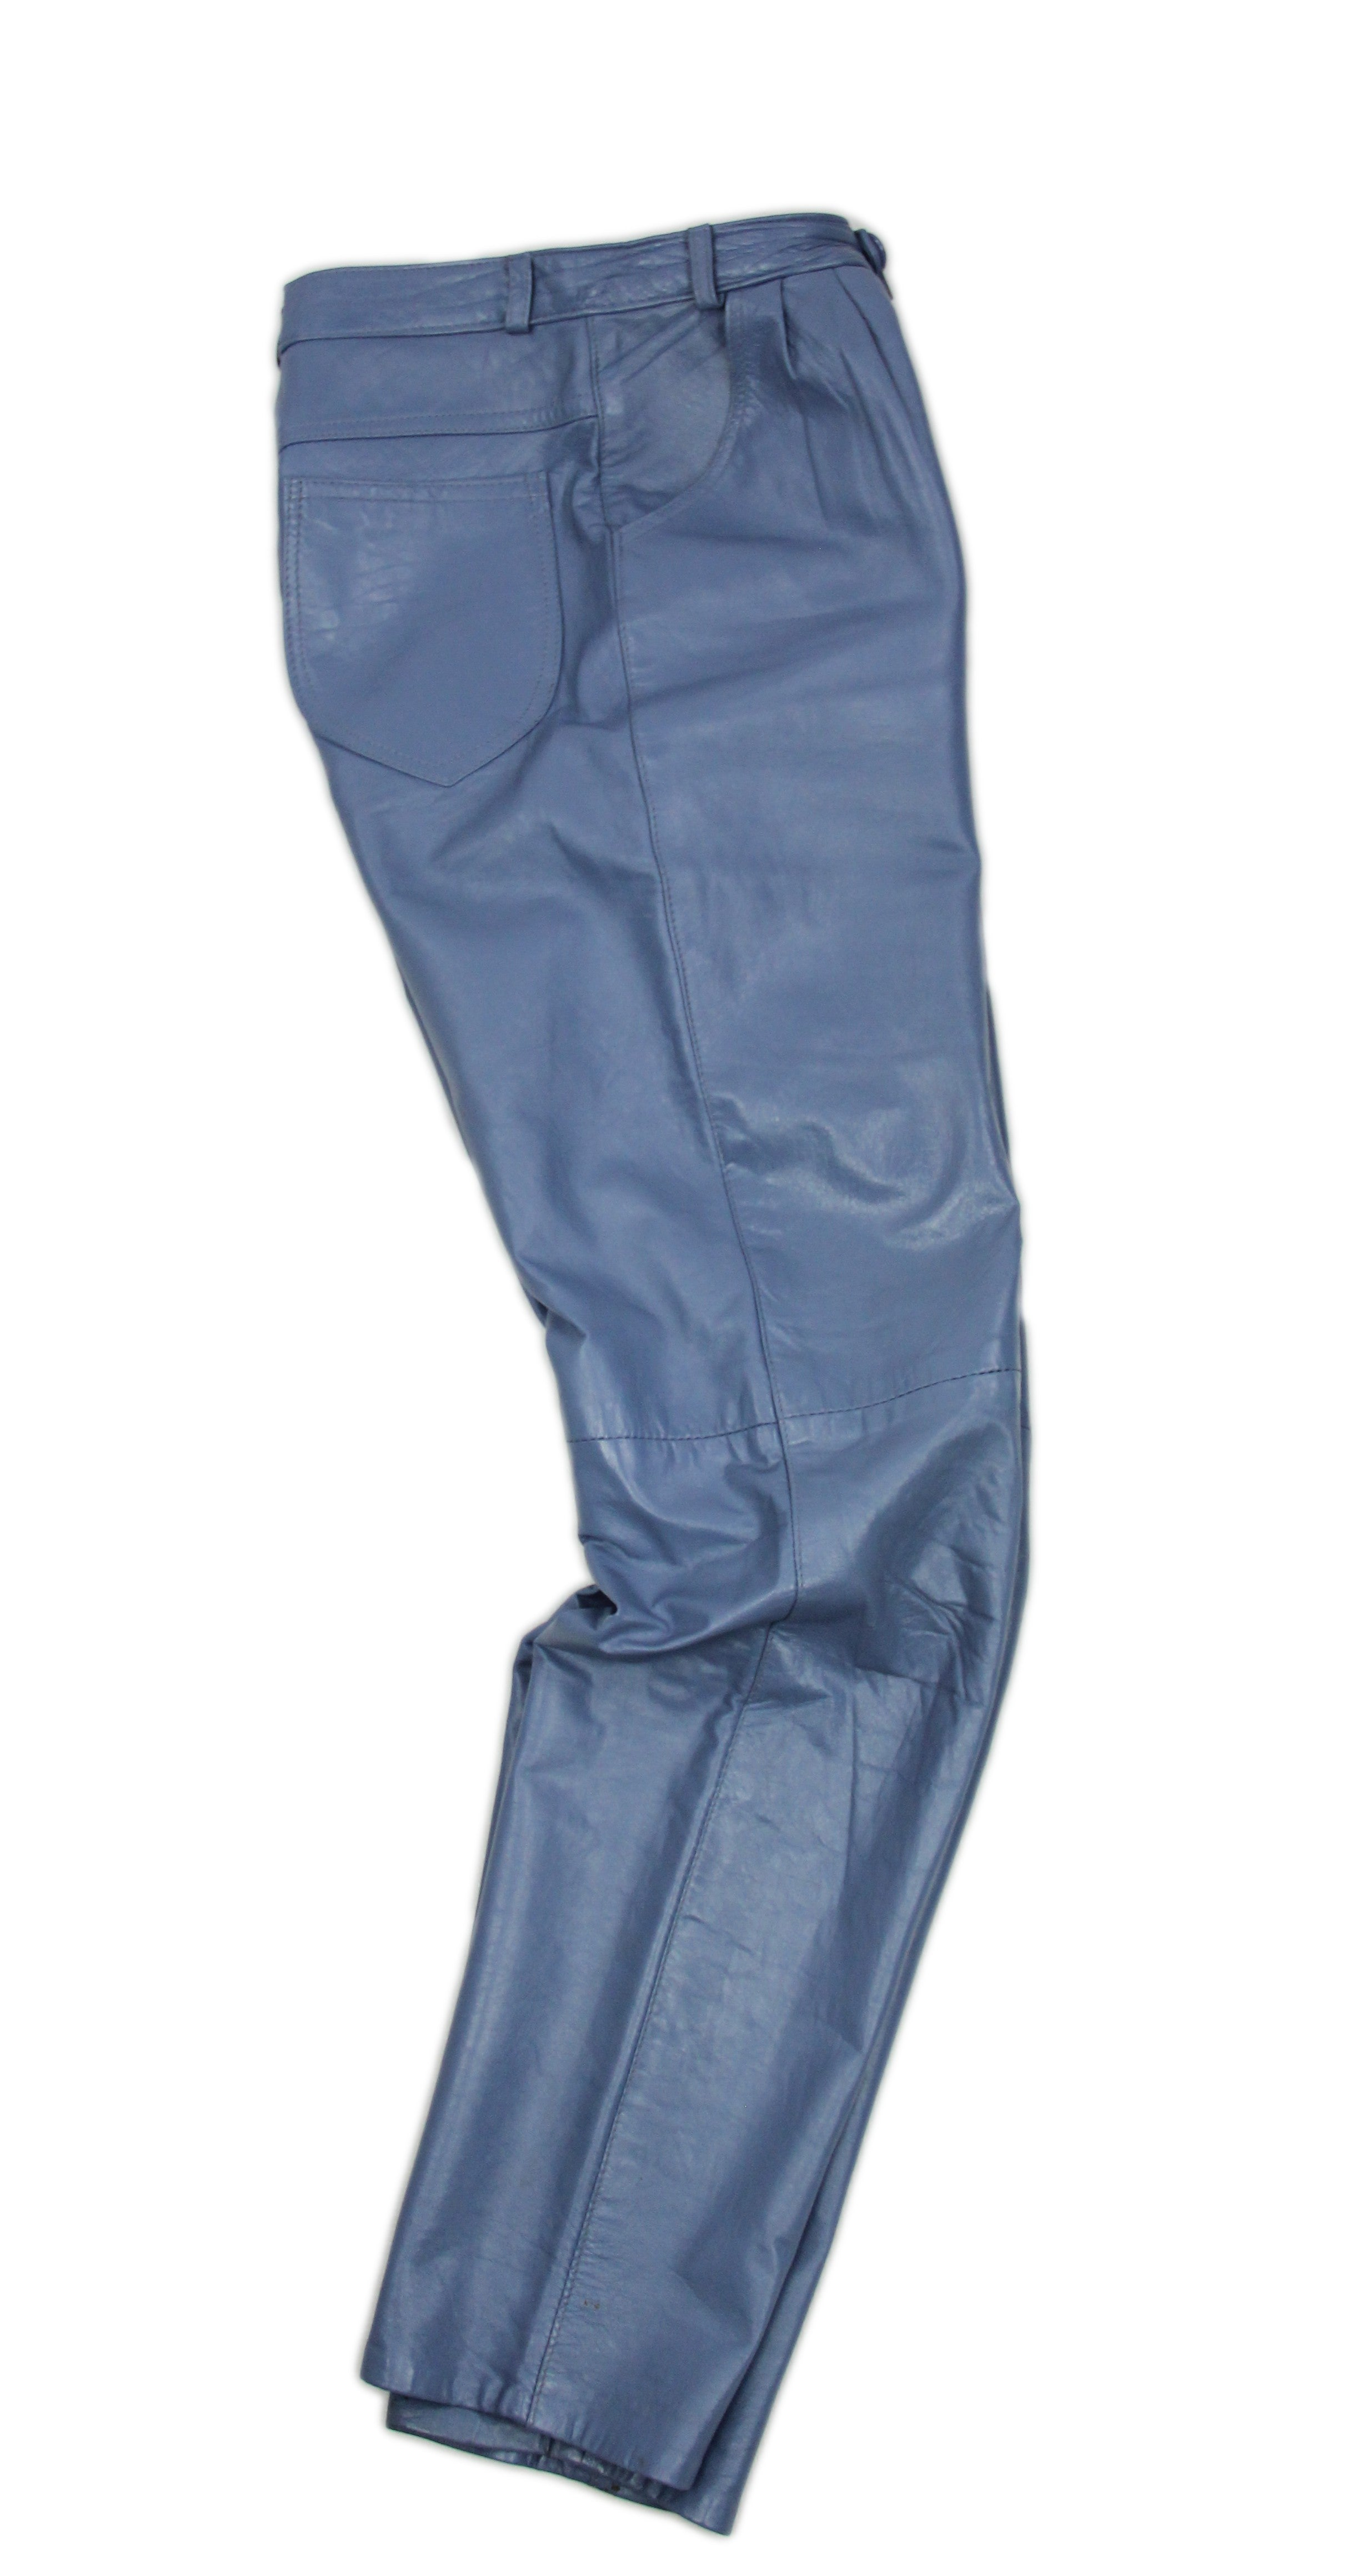 High Waist Light Blue Soft Leather Pants SIZE XS, US 4, EU 34 - secondfirst